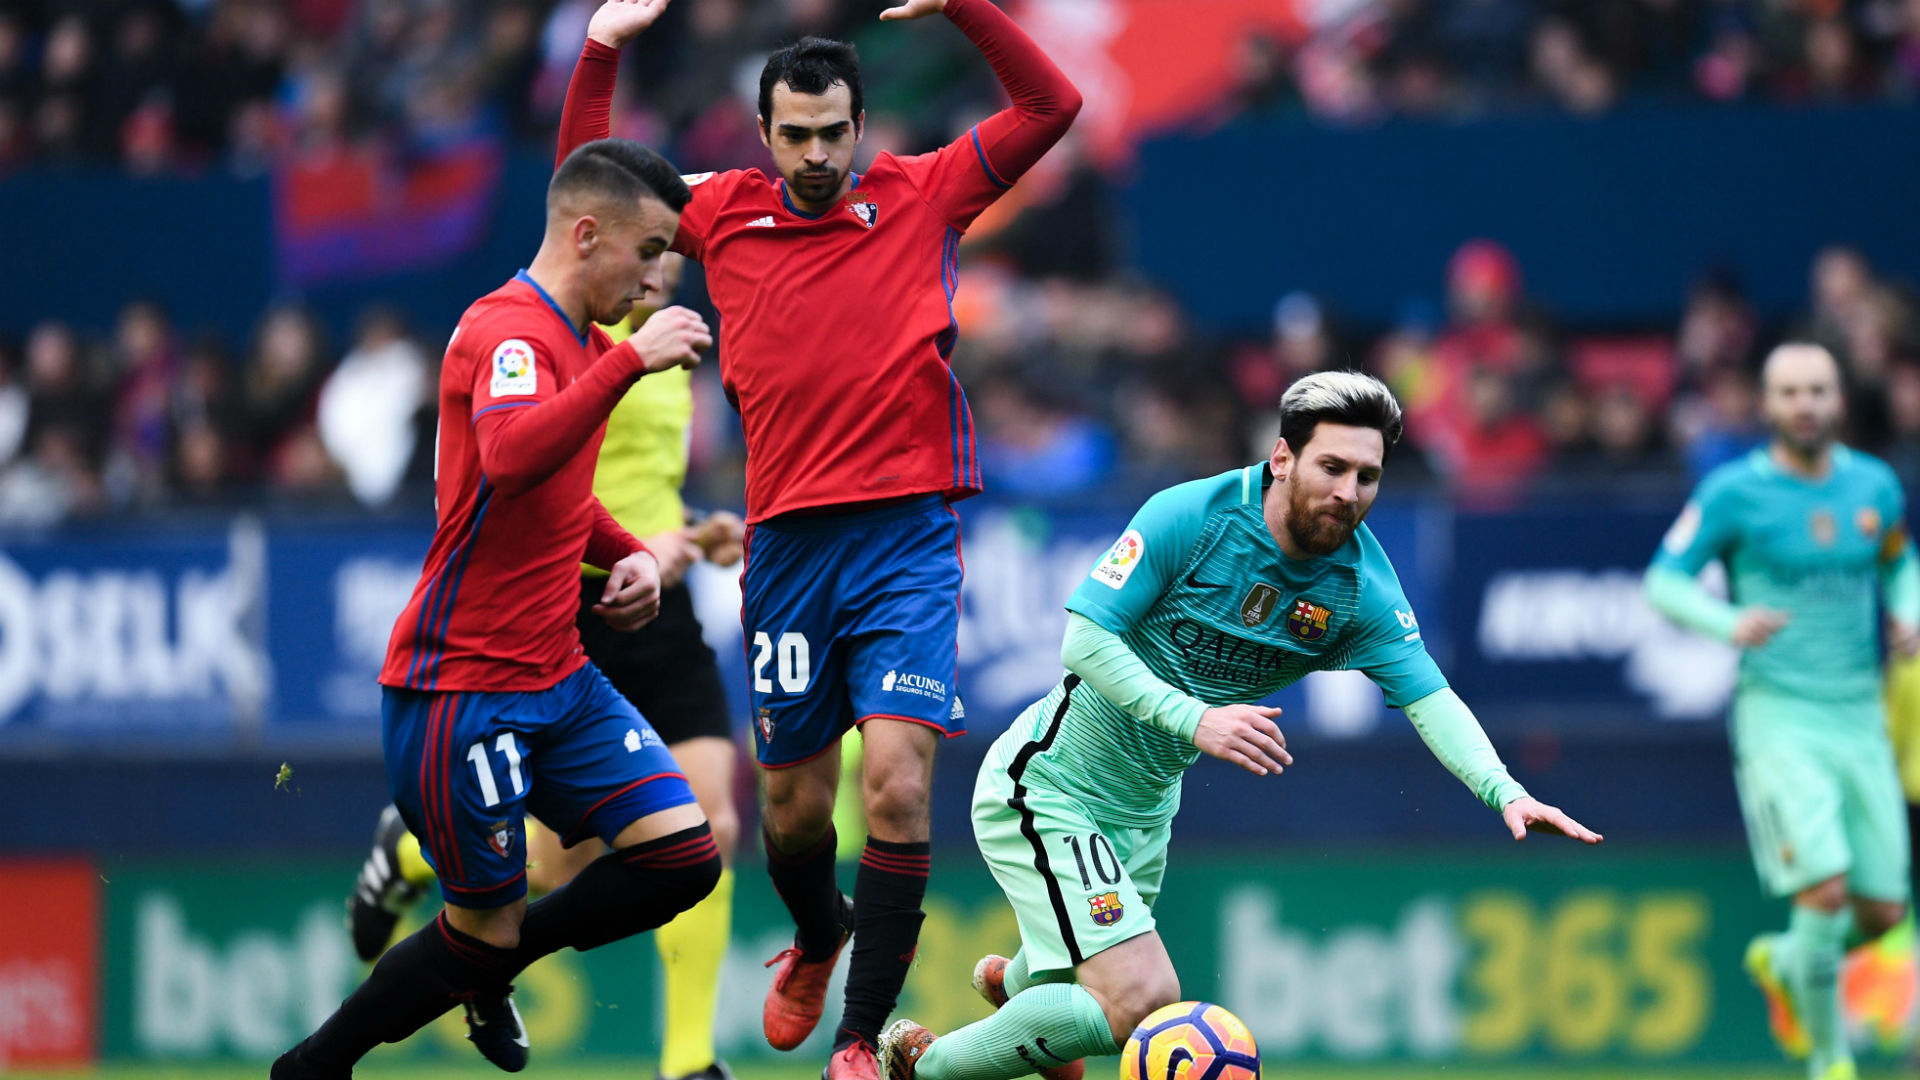 Real Madrid, Barcelona Stay Neck and Neck After Big Wins